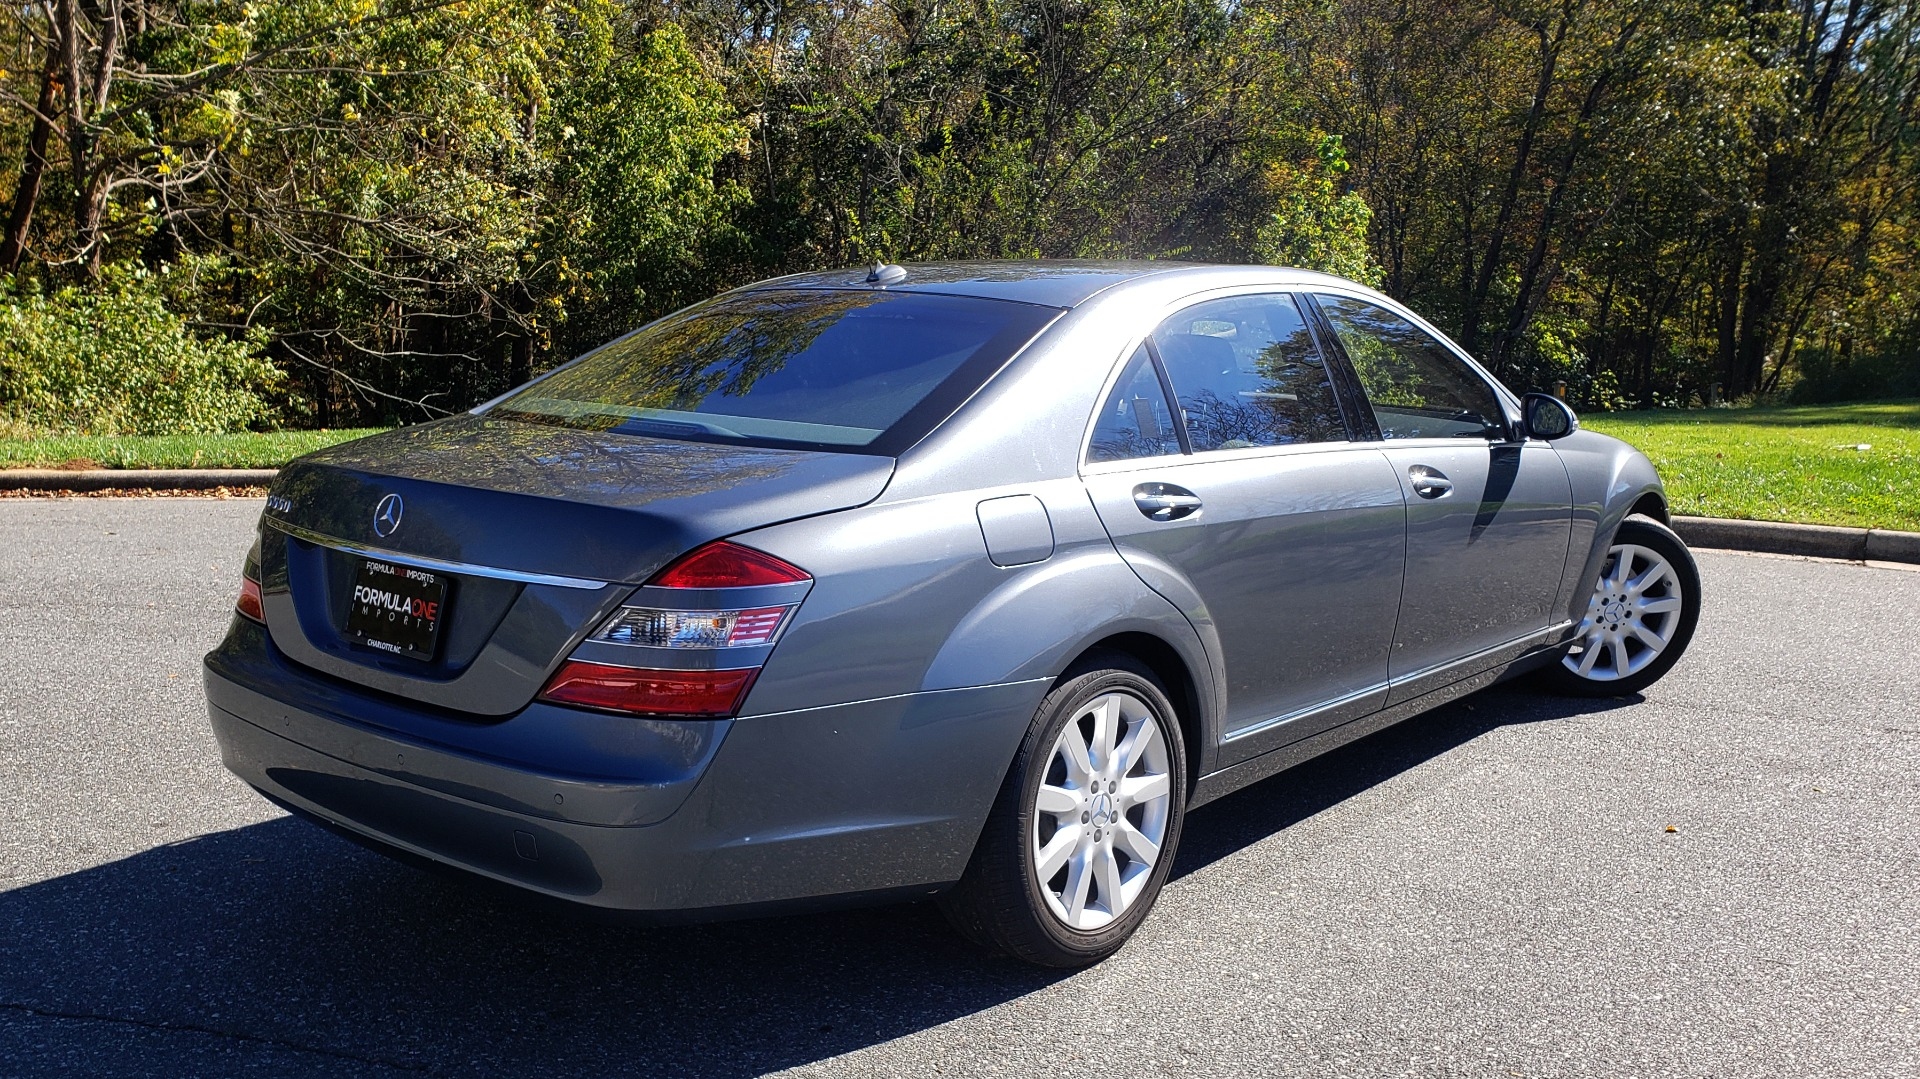 Used 2007 Mercedes-Benz S-CLASS S550 5.5L V8 / LWB / PREM 2 / NAV / SUNROOF / KEYLESS-GO for sale Sold at Formula Imports in Charlotte NC 28227 8